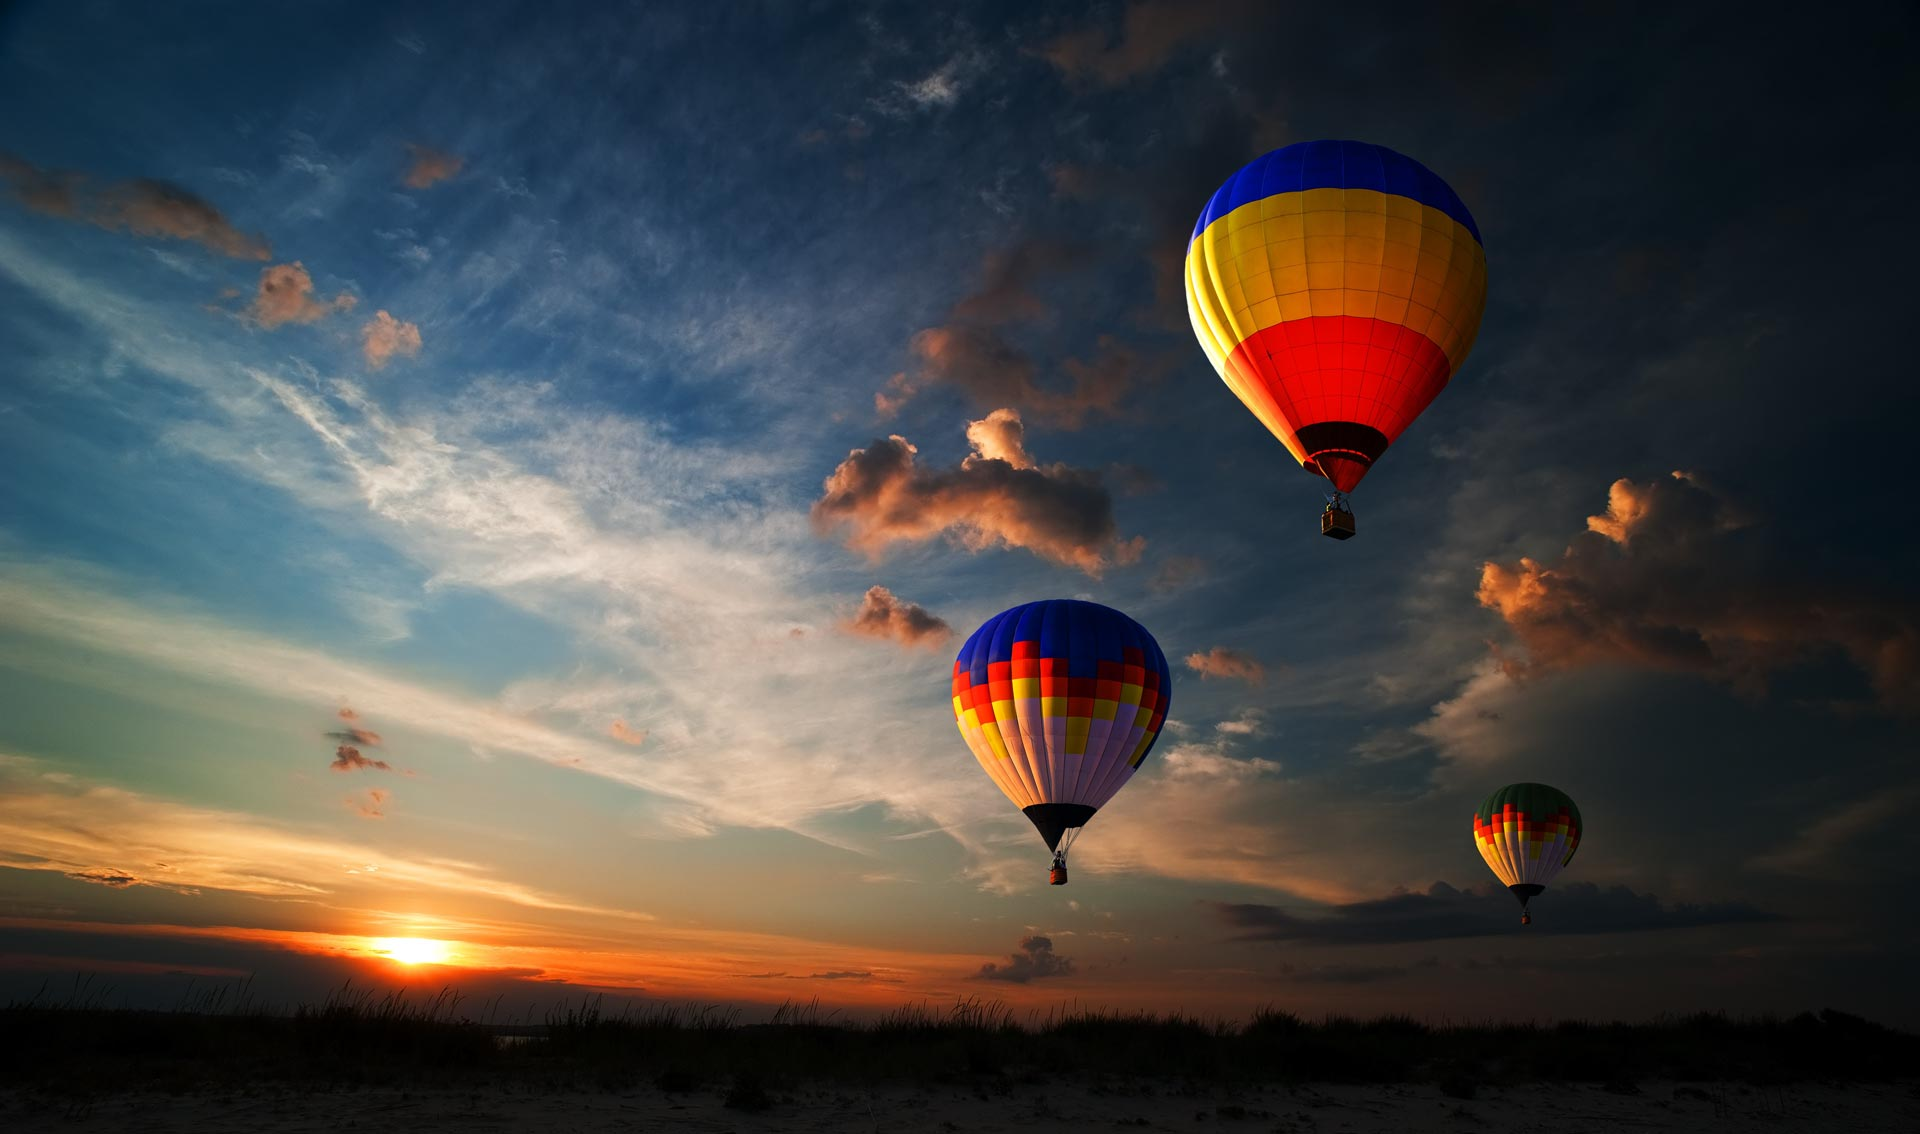 Three hot air balloons ascending into a dark sky with a sunset in the background